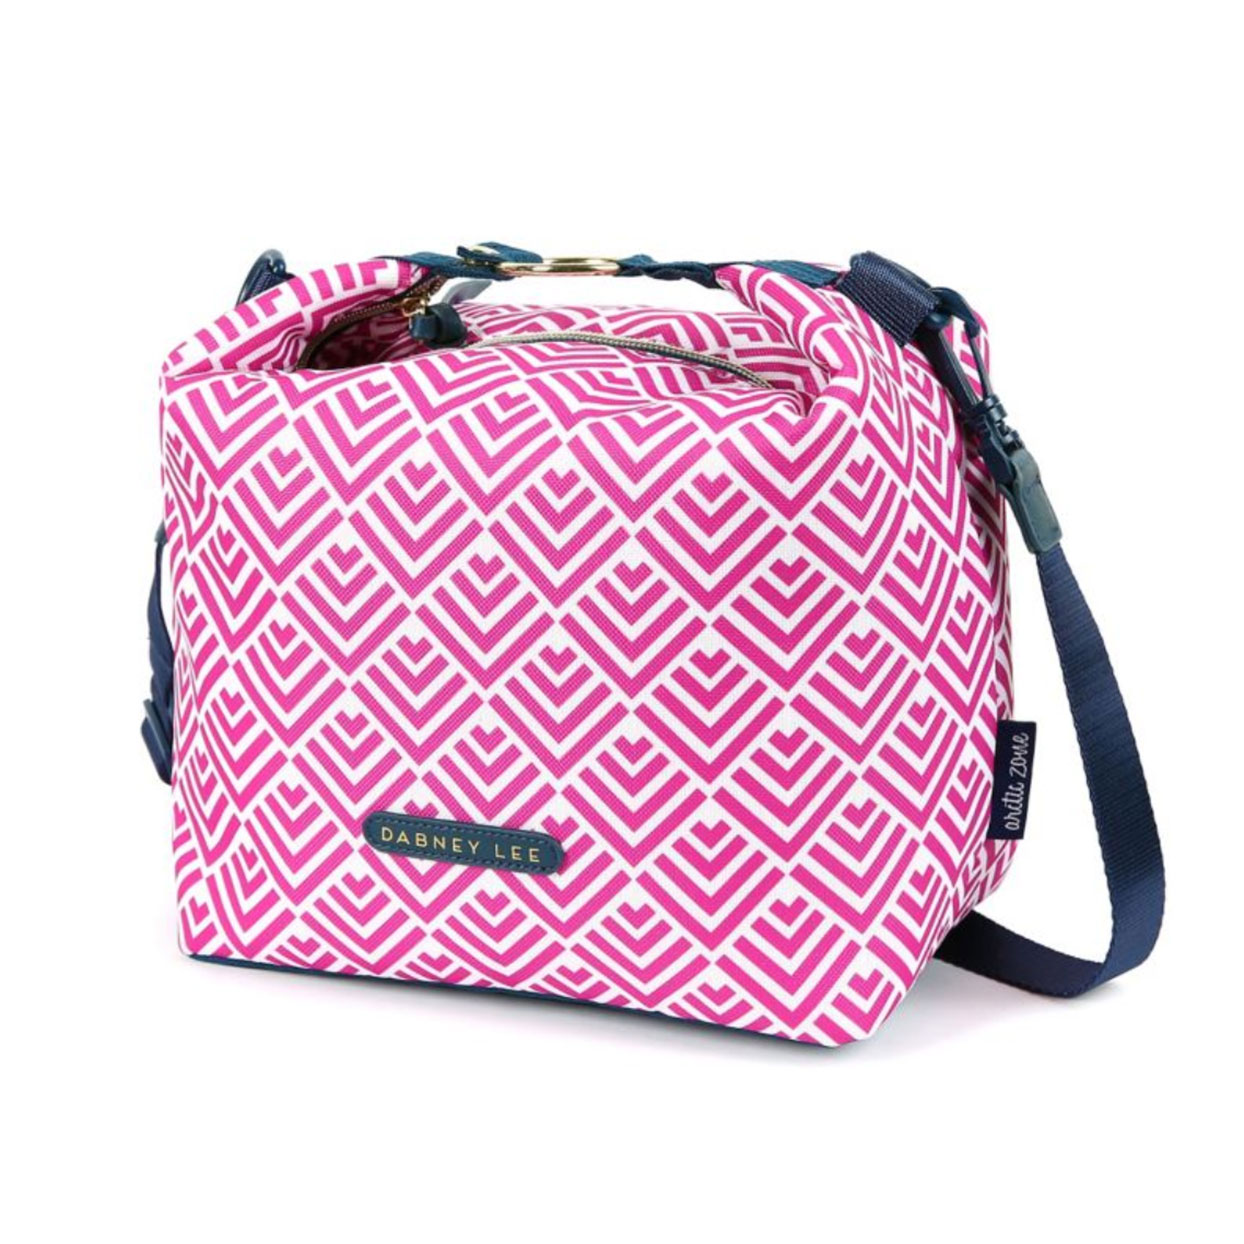 Dabney Lee by Arctic Zone Zinnia Lunch Tote